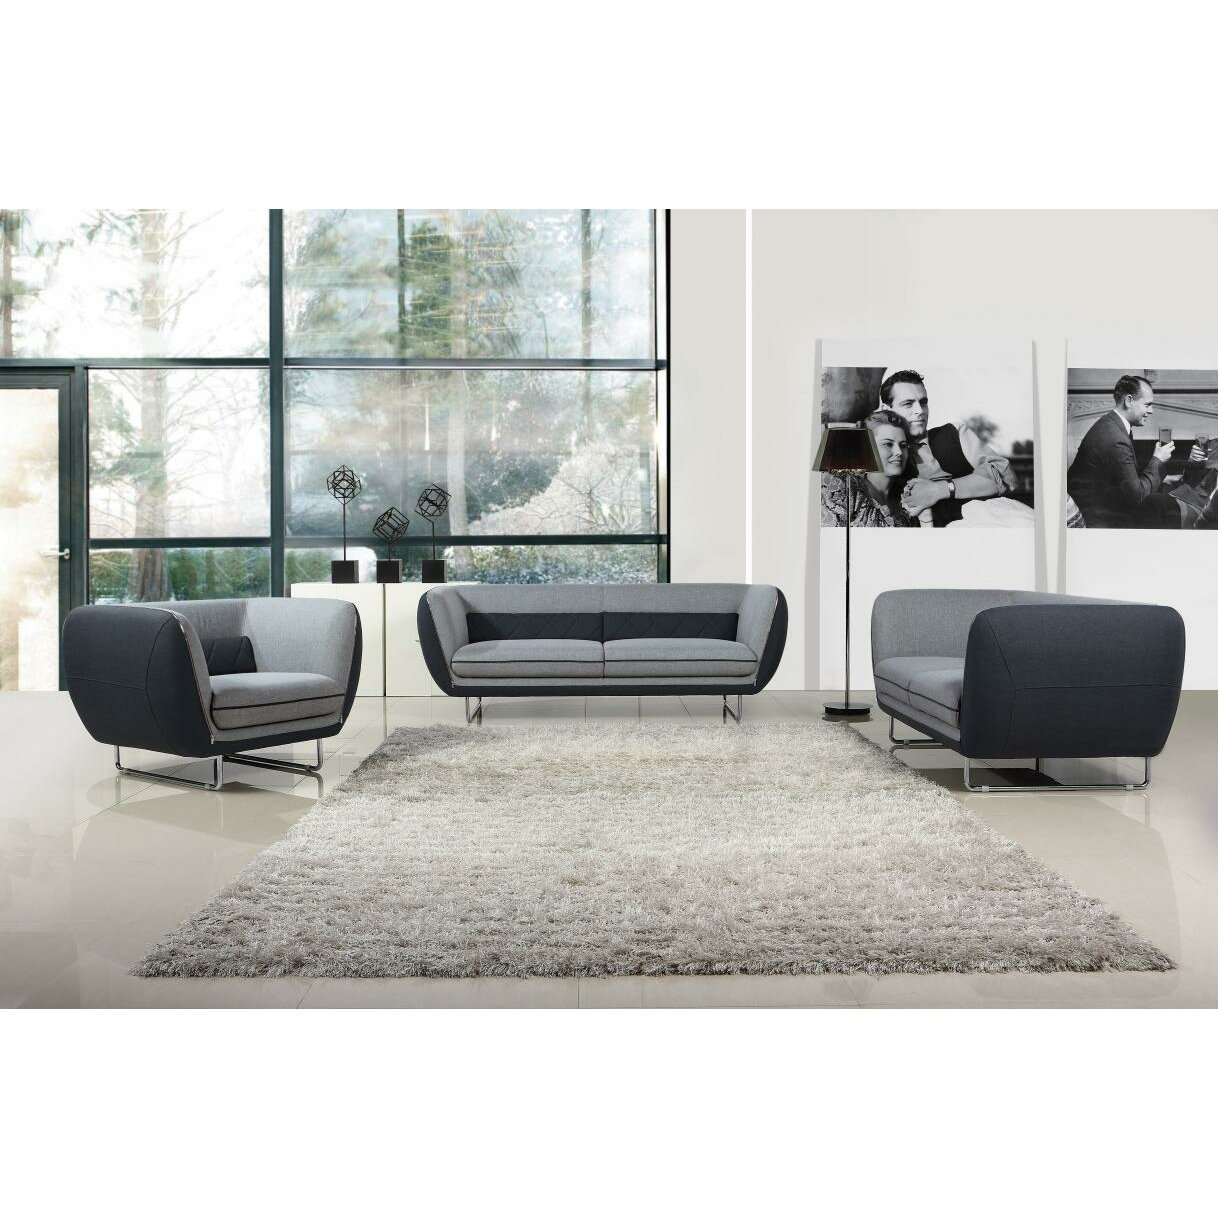 Divani Casa Vietta Modern Living Room Set by VIG Furniture